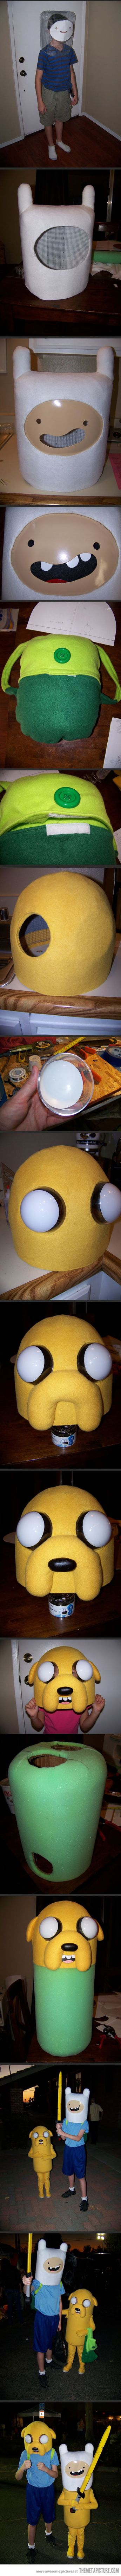 Amazing 'Adventure Time' costumes dad made for his kids…